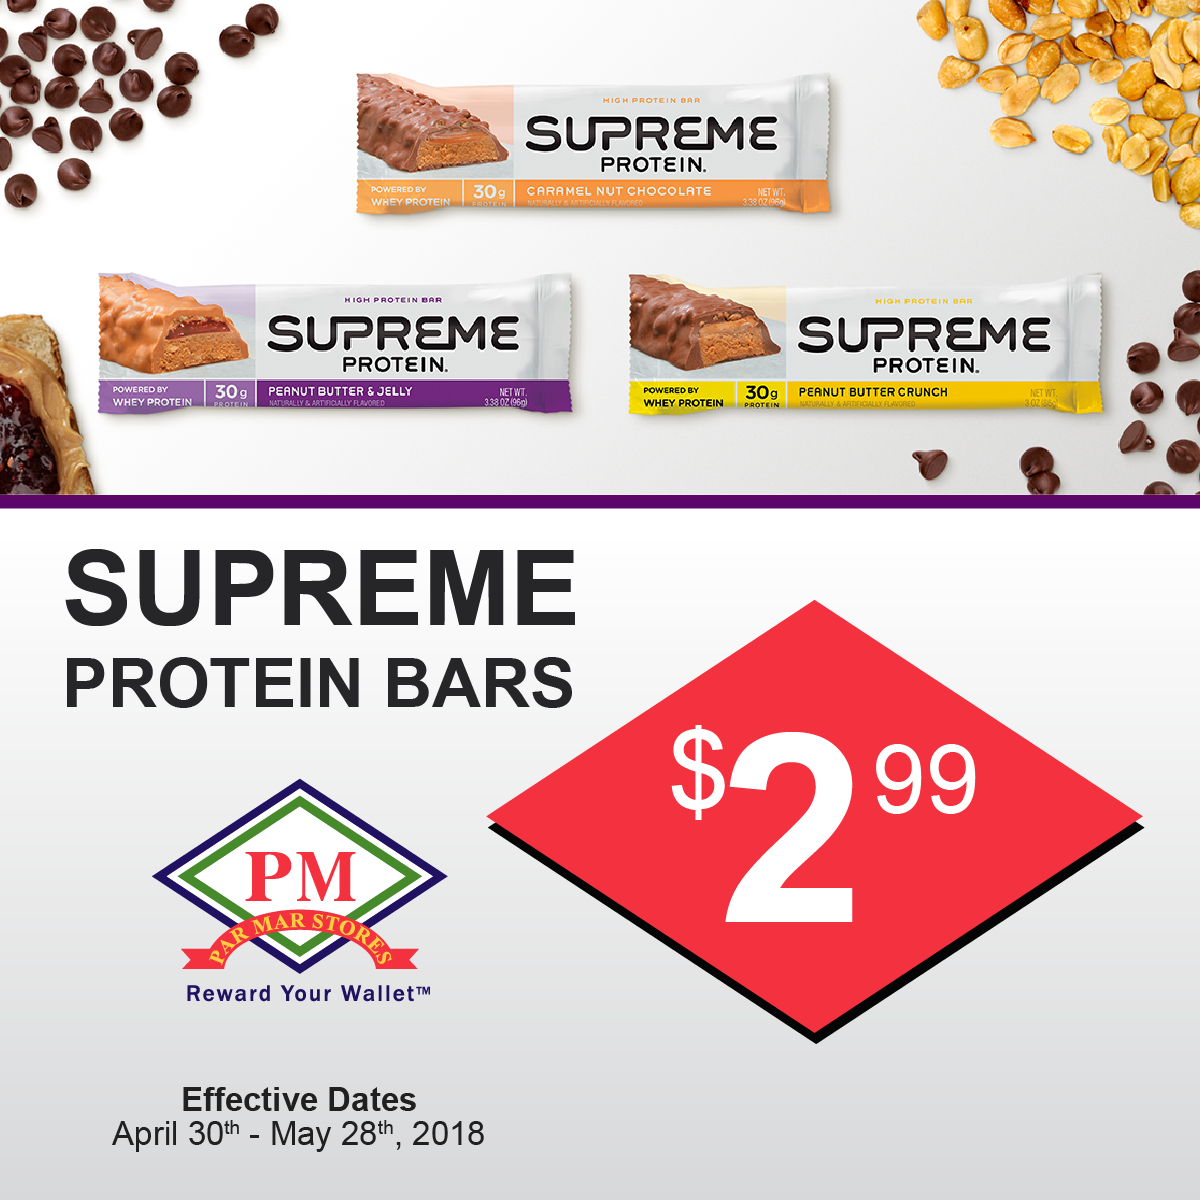 supreme protien bars